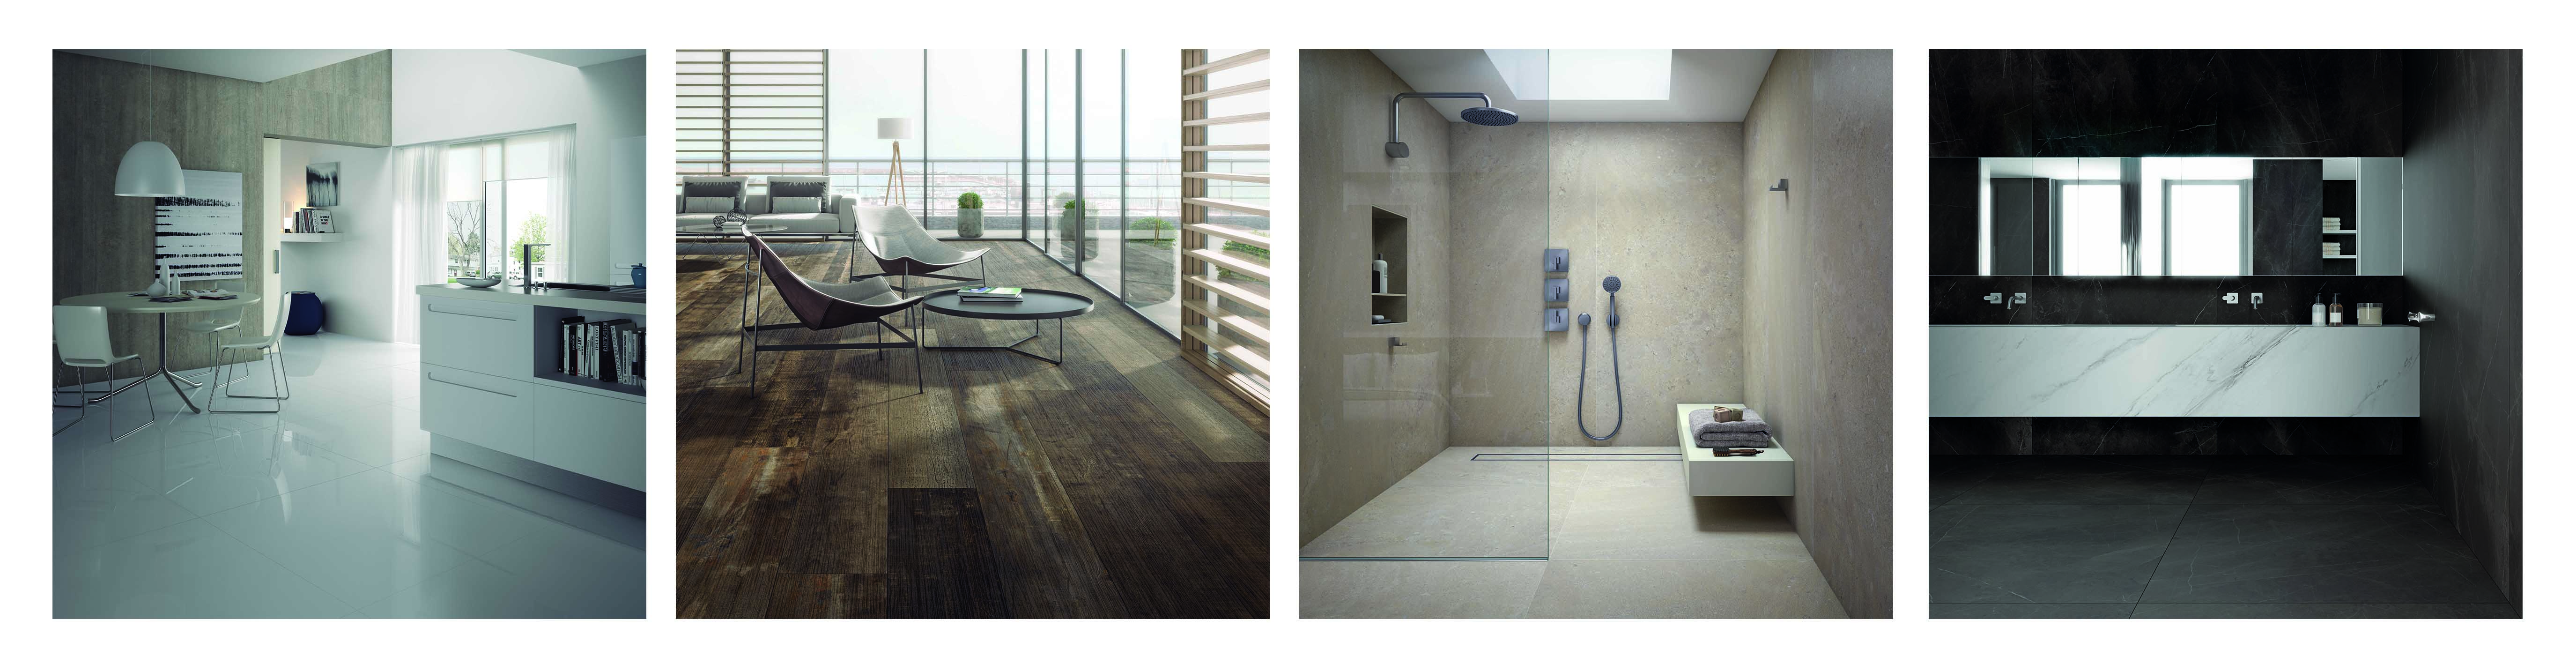 4 Images side by side showing different applications for Ceralsio Porcelain products